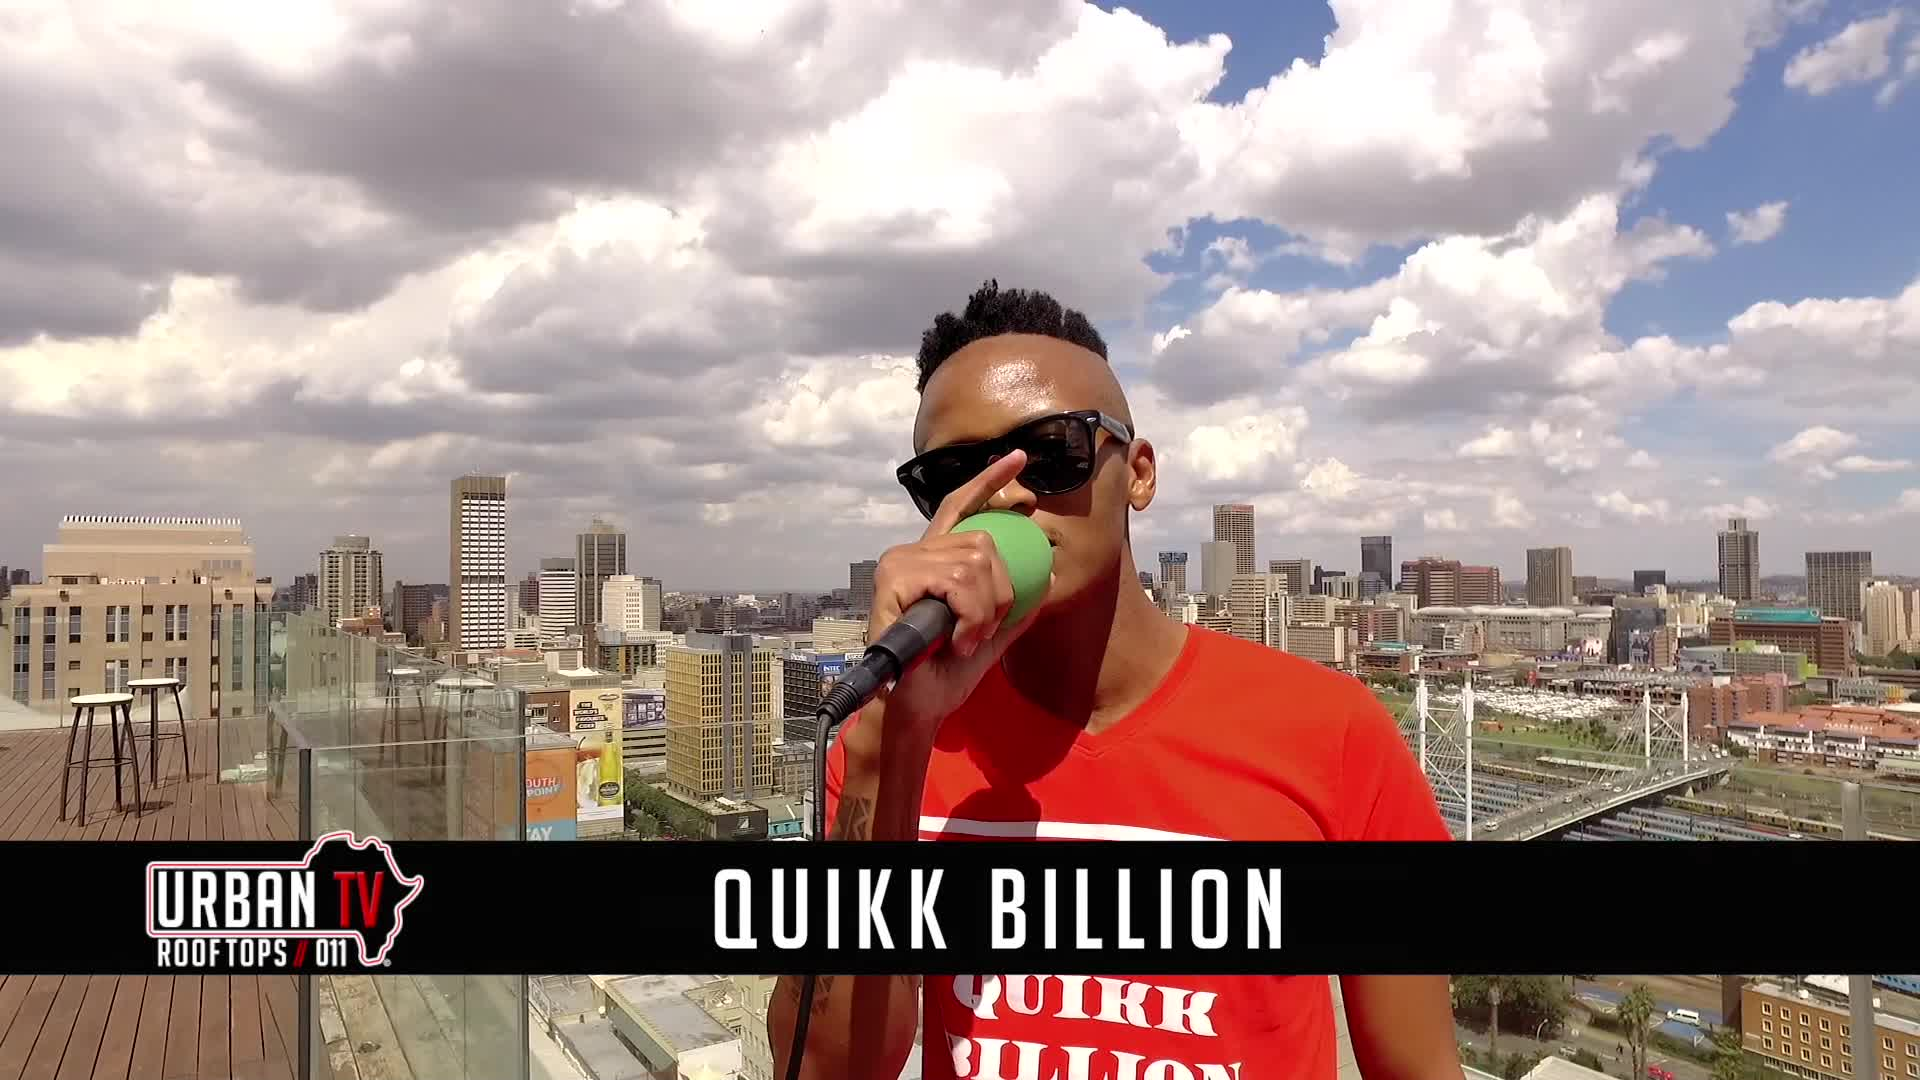 Quikk Billion - Tidodo